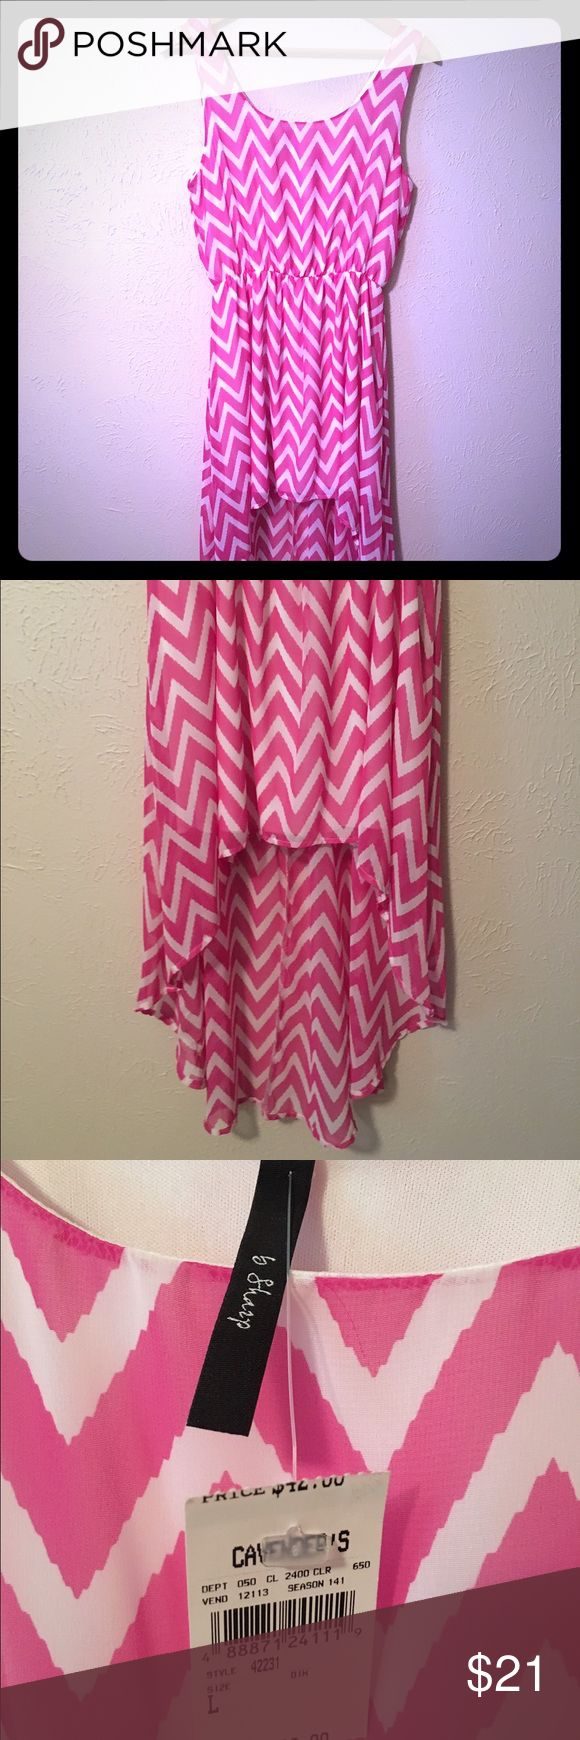 Chevron Summer Dress Pink and white chevron dress. Hits above the knee in the front and to the calf in the back. Top layer is sheer with a built in white slip. Dresses Asymmetrical